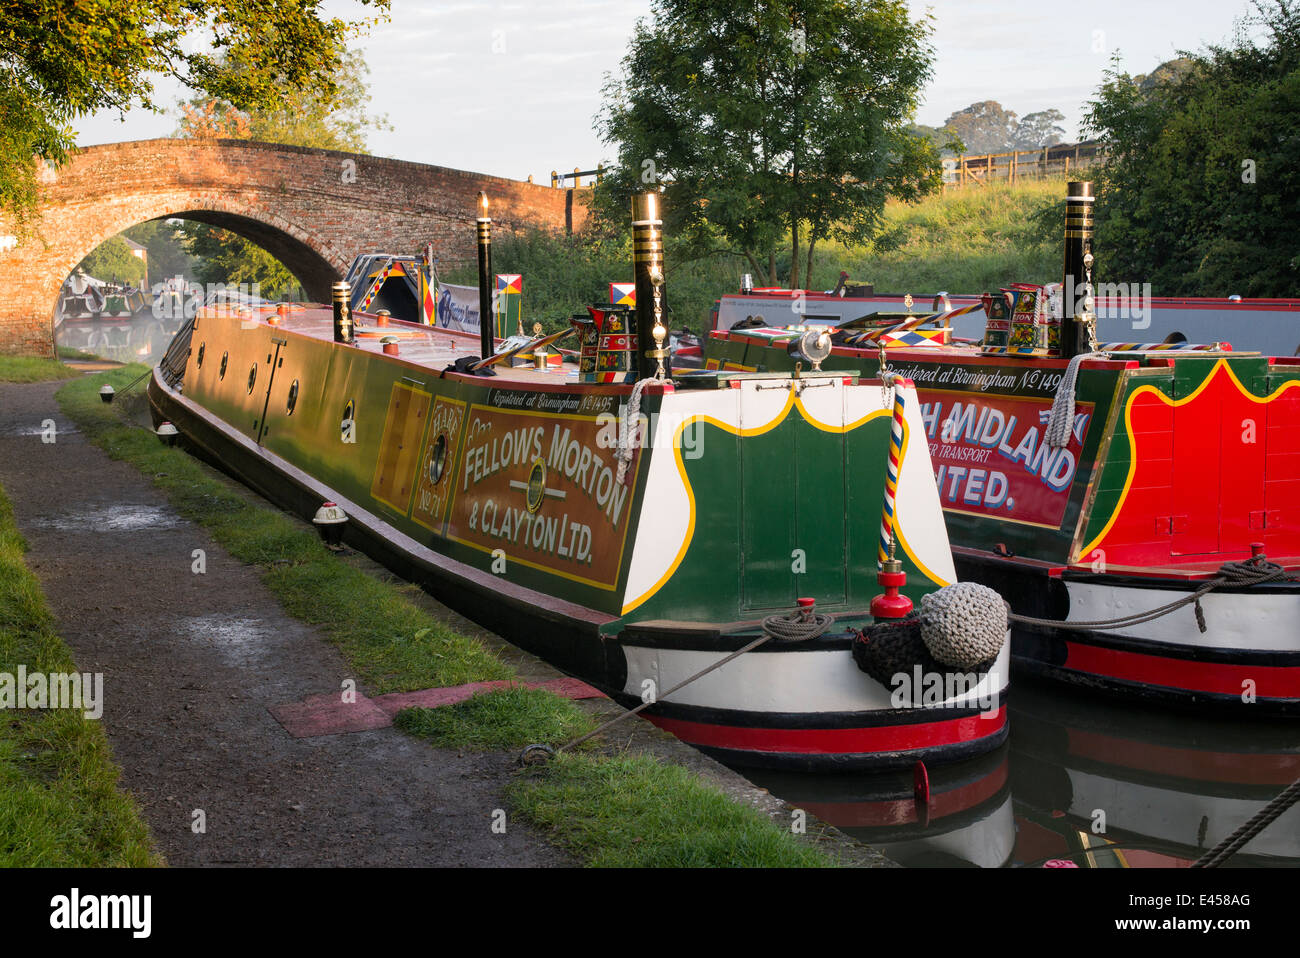 Narrowboats at Braunston Historic Canal Rally on the Grand Union canal at sunrise.  Braunston, Northamptonshire, - Stock Image